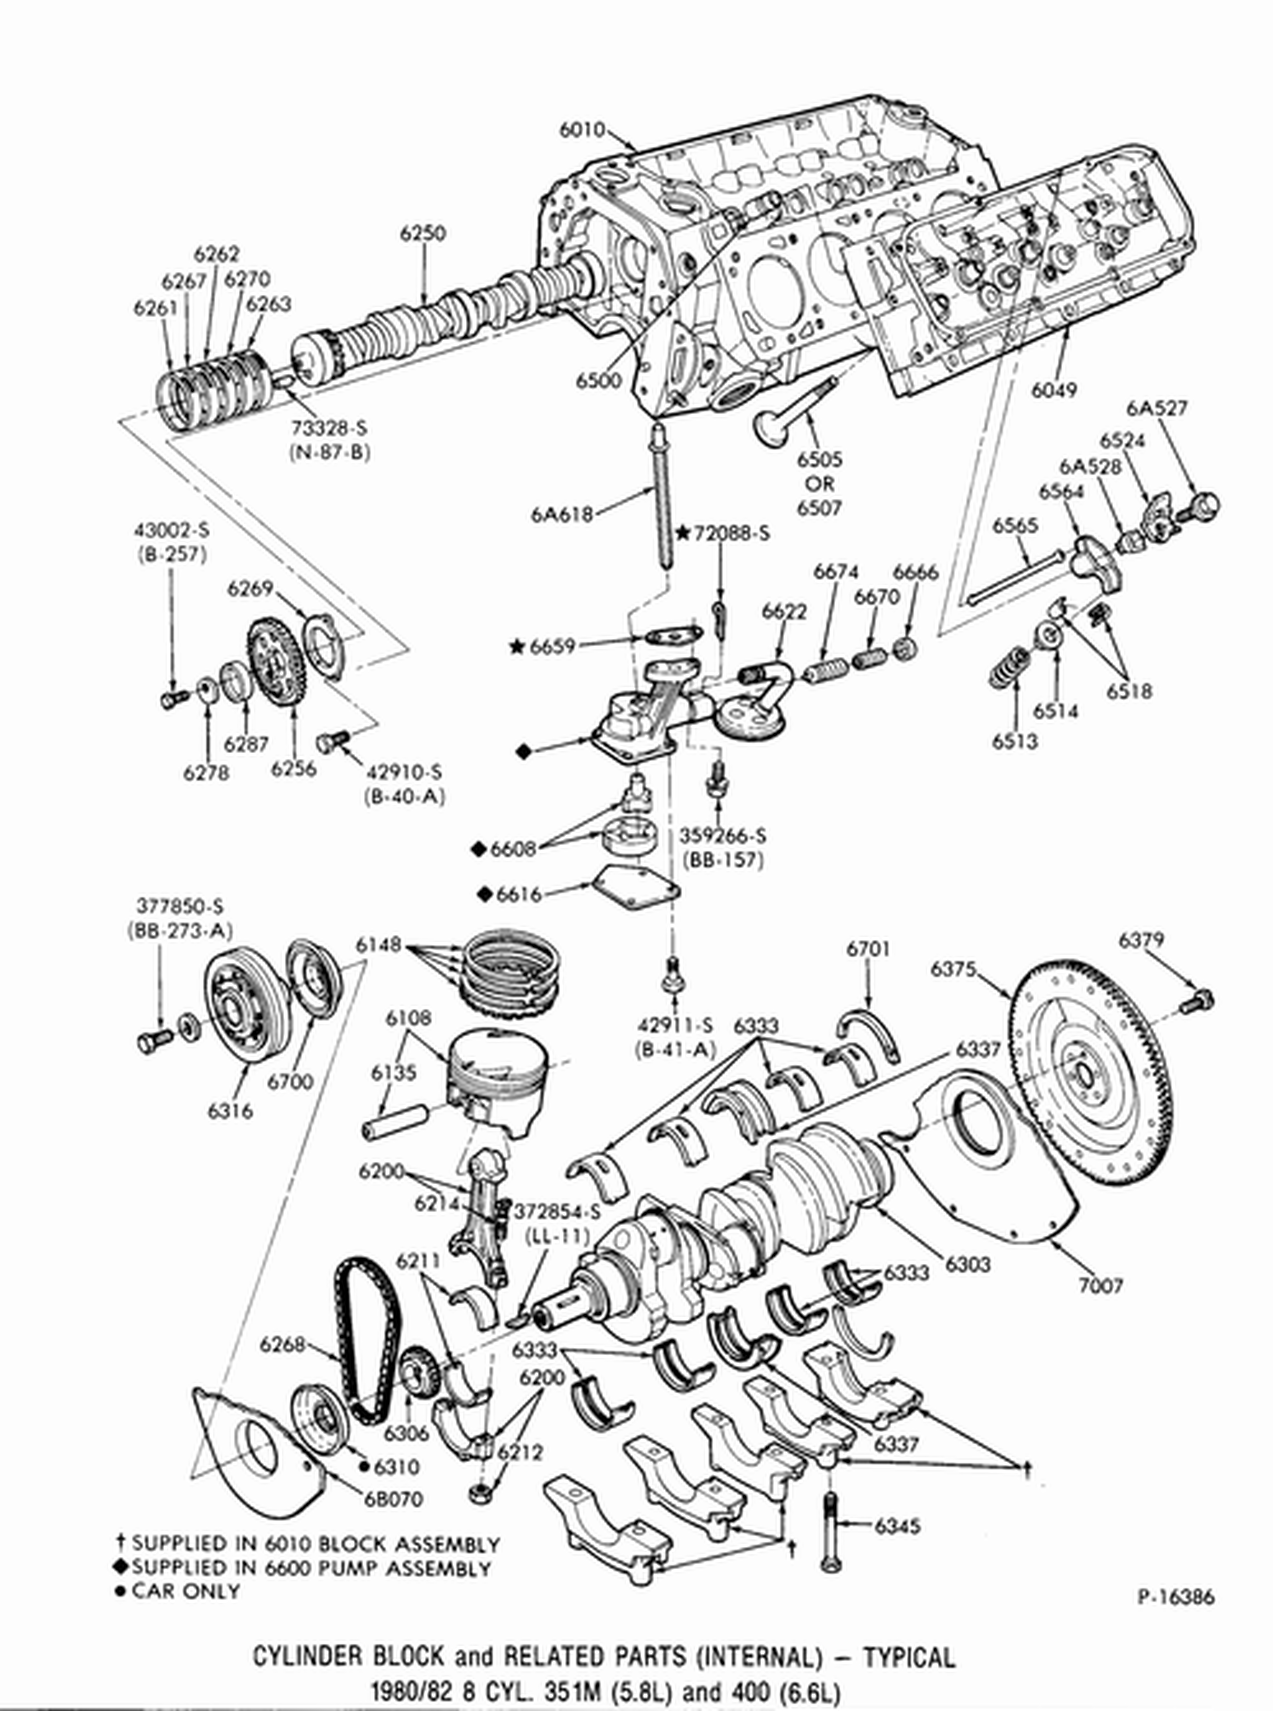 351m And 400 Garys Garagemahal The Bullnose Bible 1978 Ford F 250 Heater Fan Wiring Diagram Fords 335 Series Engines Use A Bit Different Oiling System Than Most Other Consequently Many Have Low Oil Pressure Especially At Idle